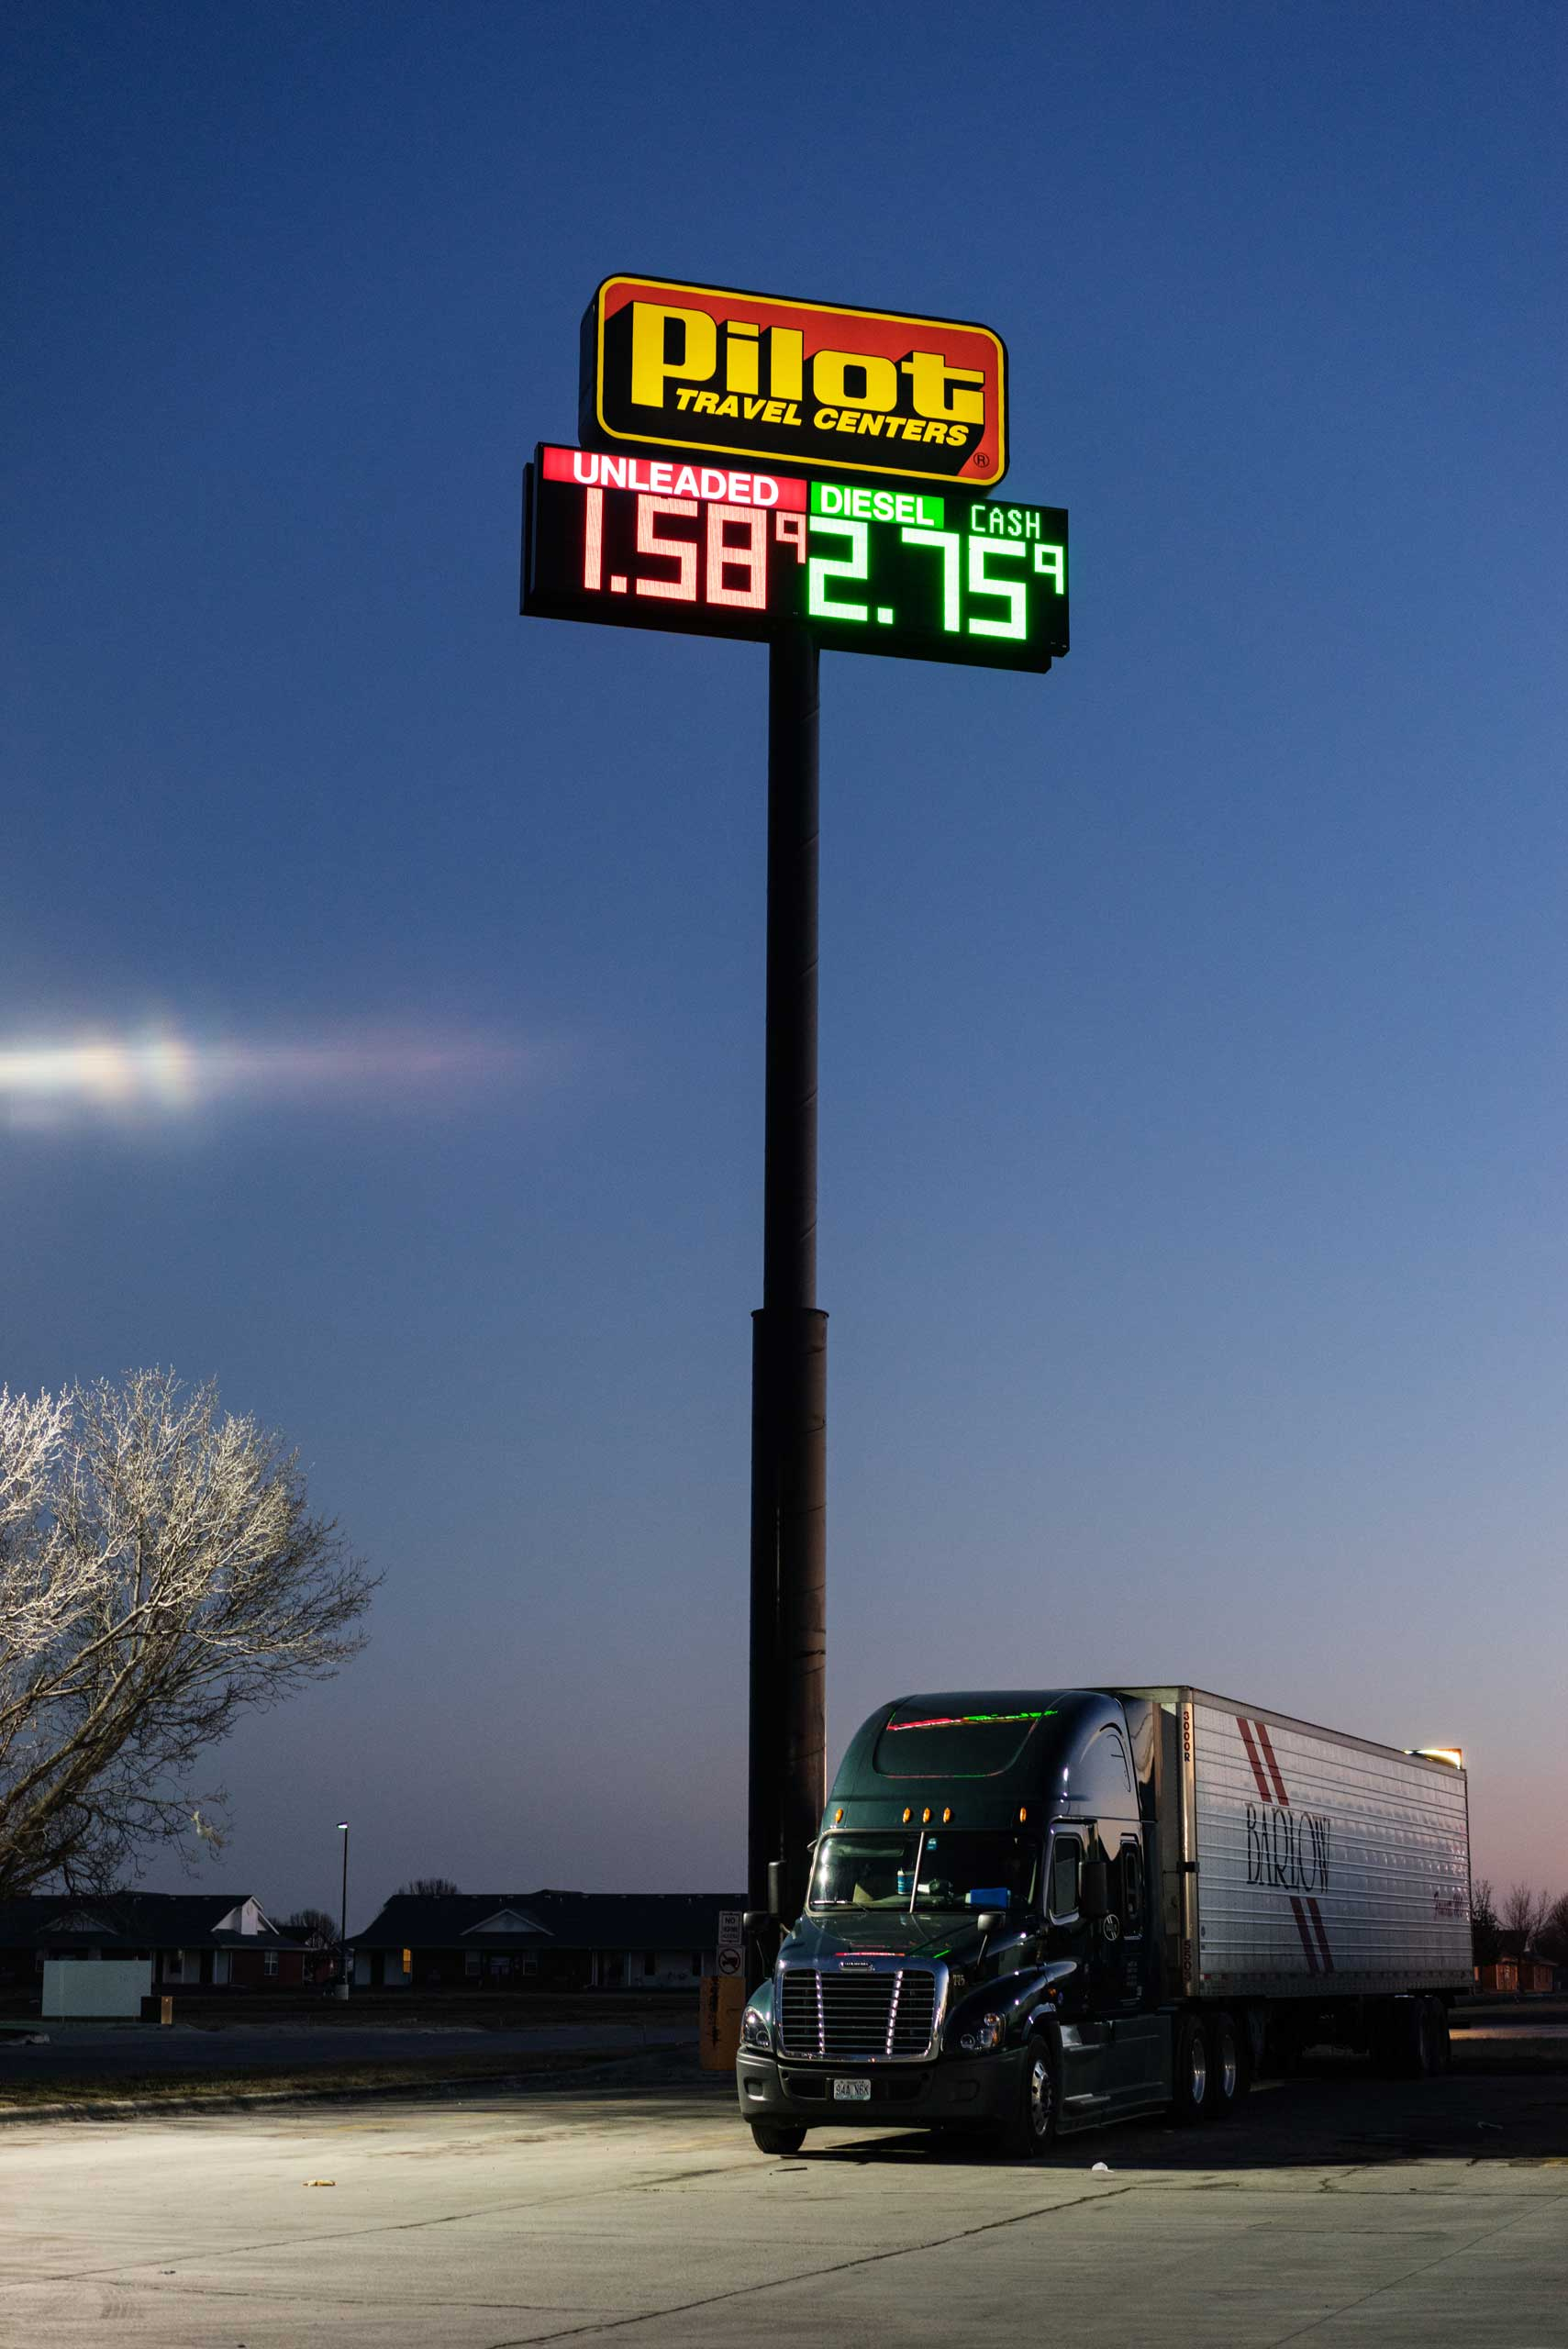 Pilot Travel Center on East Austin Road in Nevada, Mo. on Jan. 15, 2015.